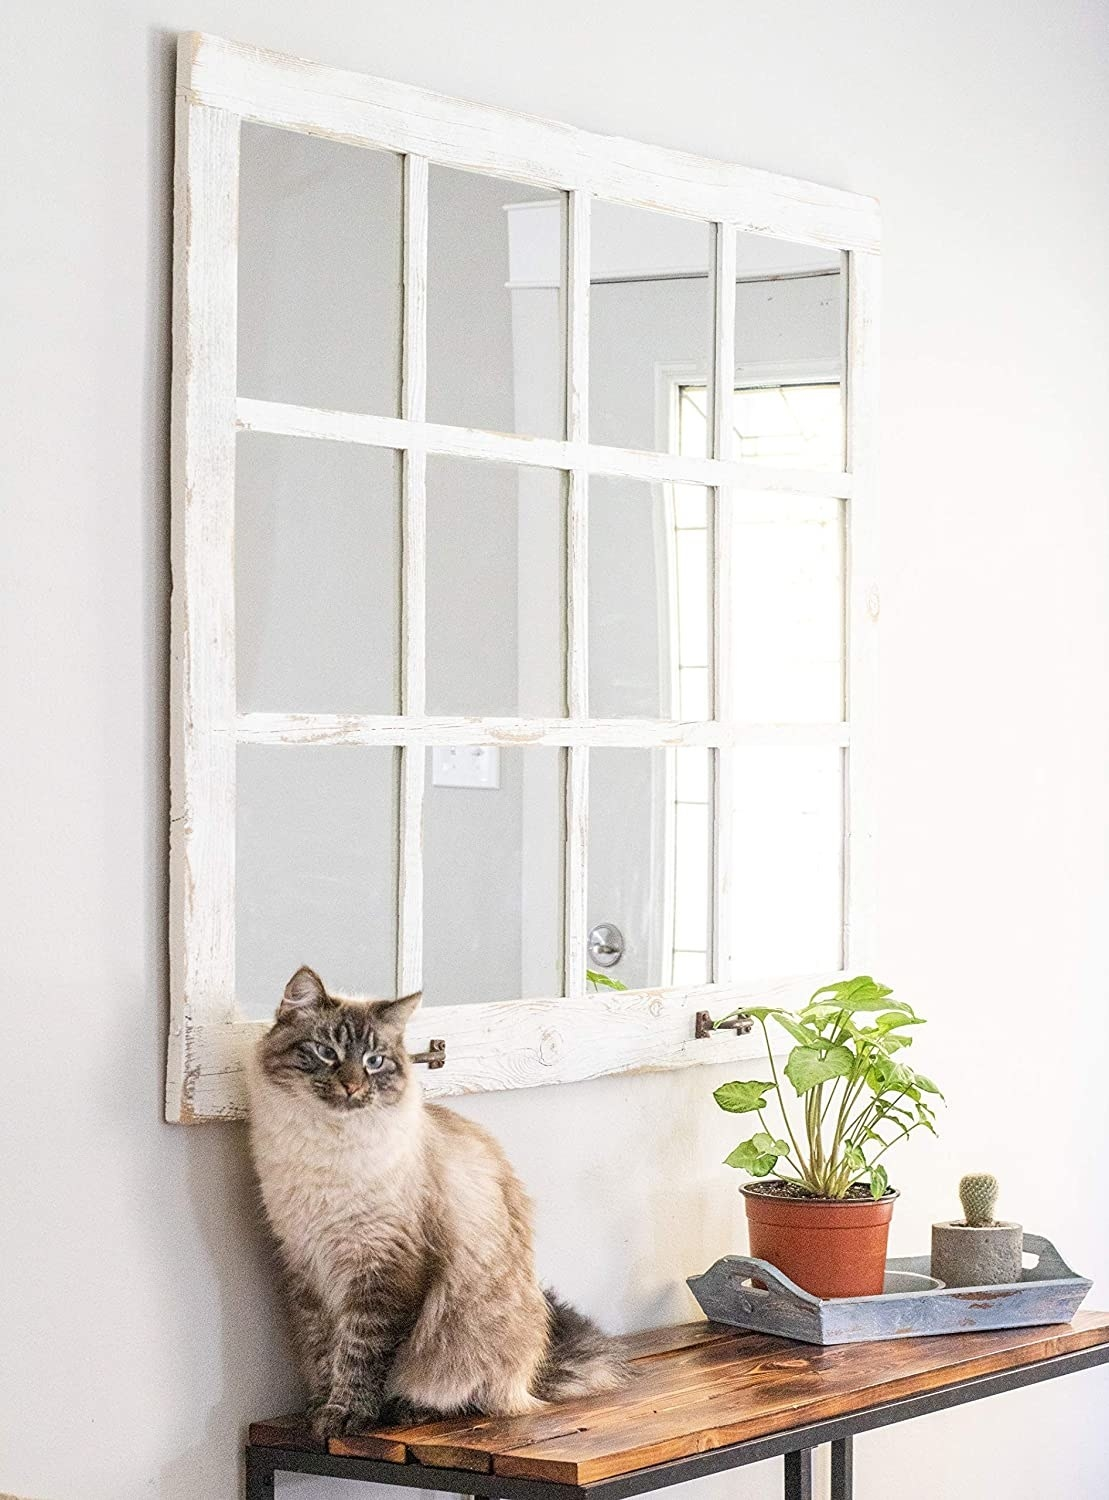 a cat sitting on a ledge underneath a white wooden window pane that's a mirror